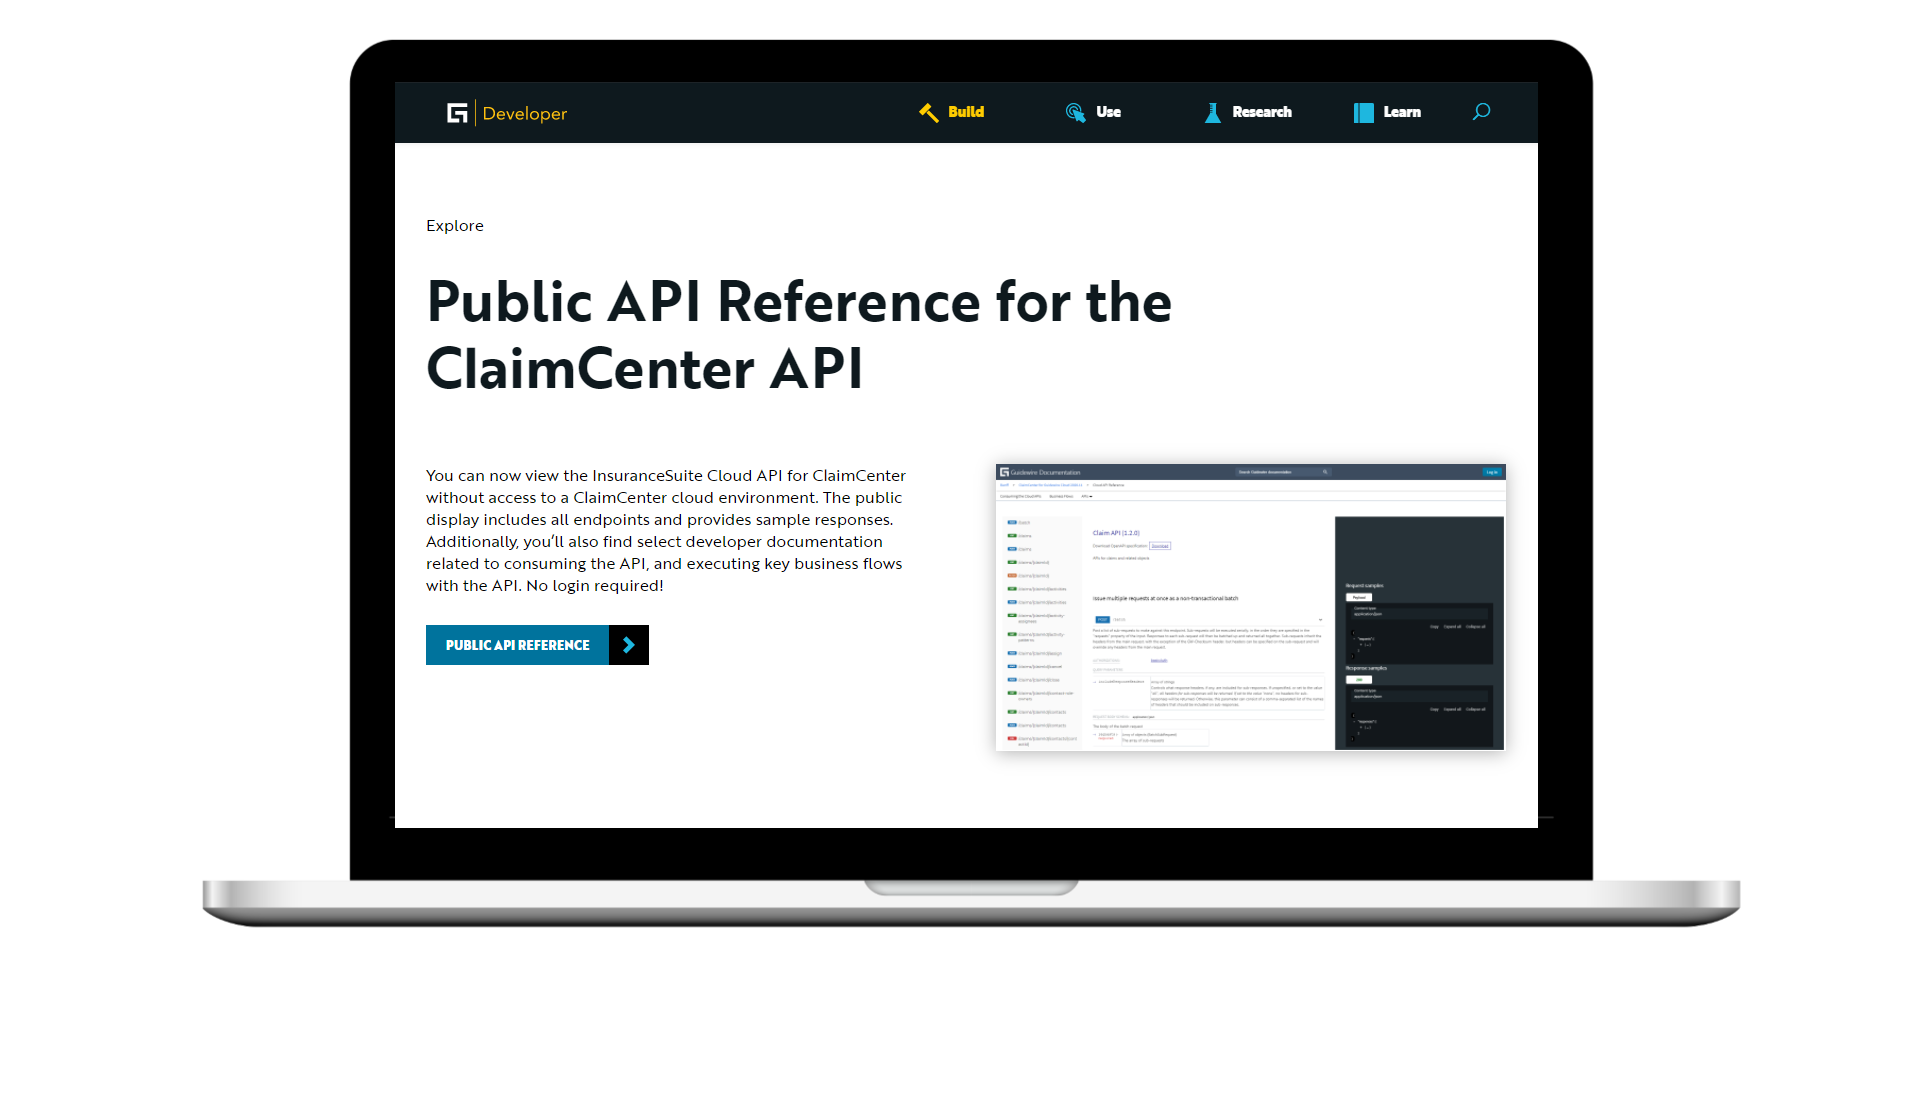 Explore the New InsuranceSuite API Reference for ClaimCenter